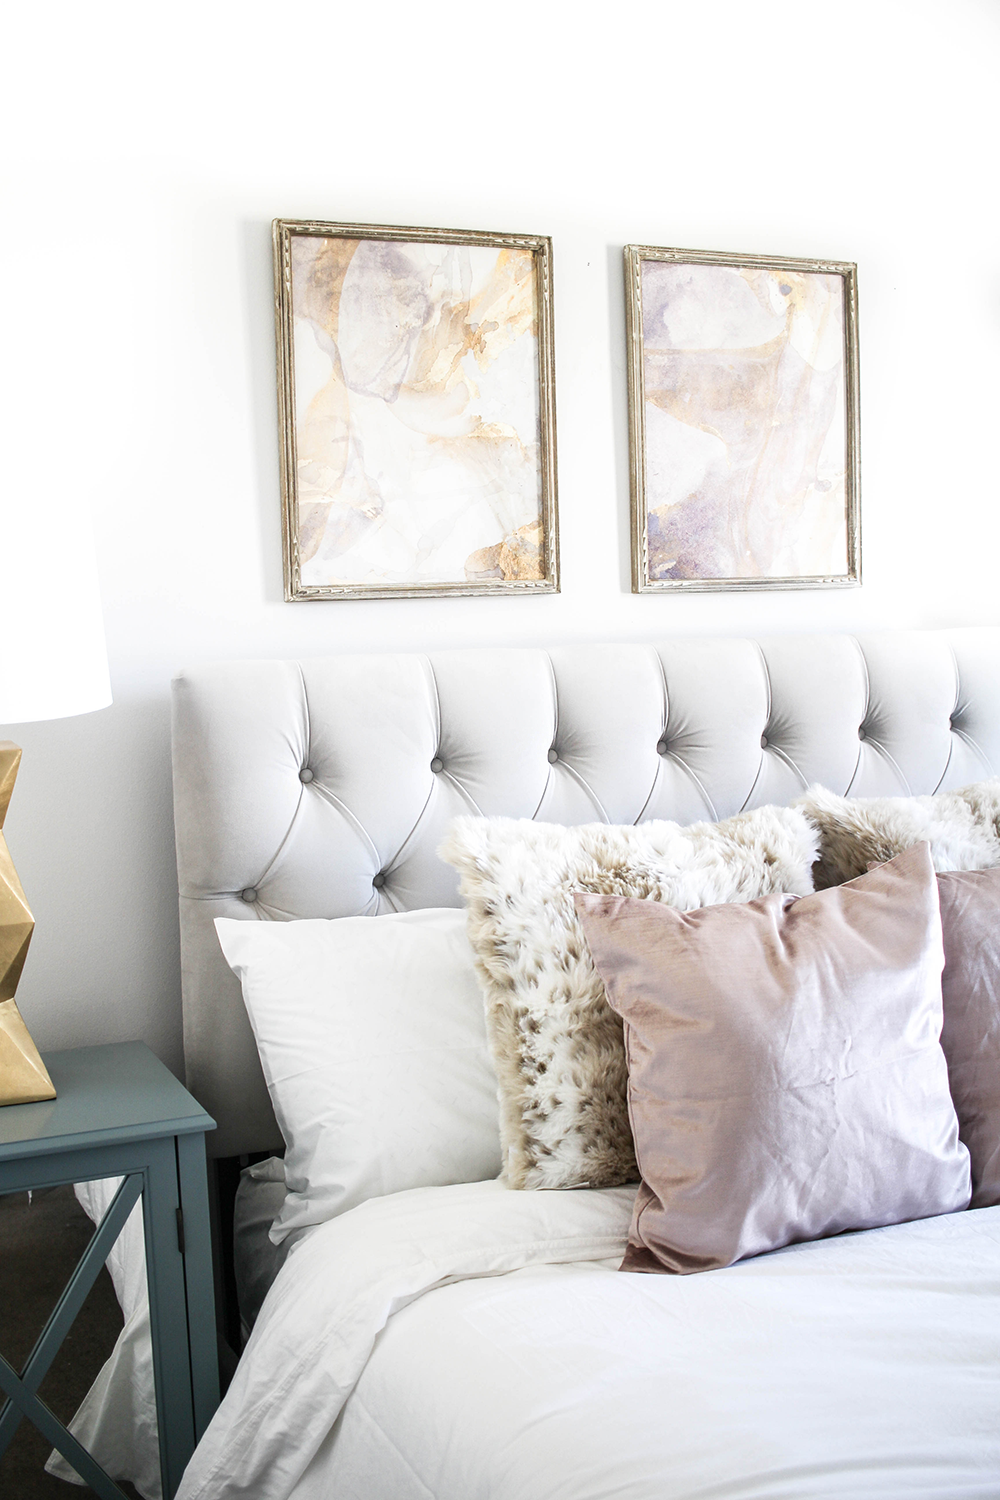 Velvet Headboard, Velvet Pillows And Pastels